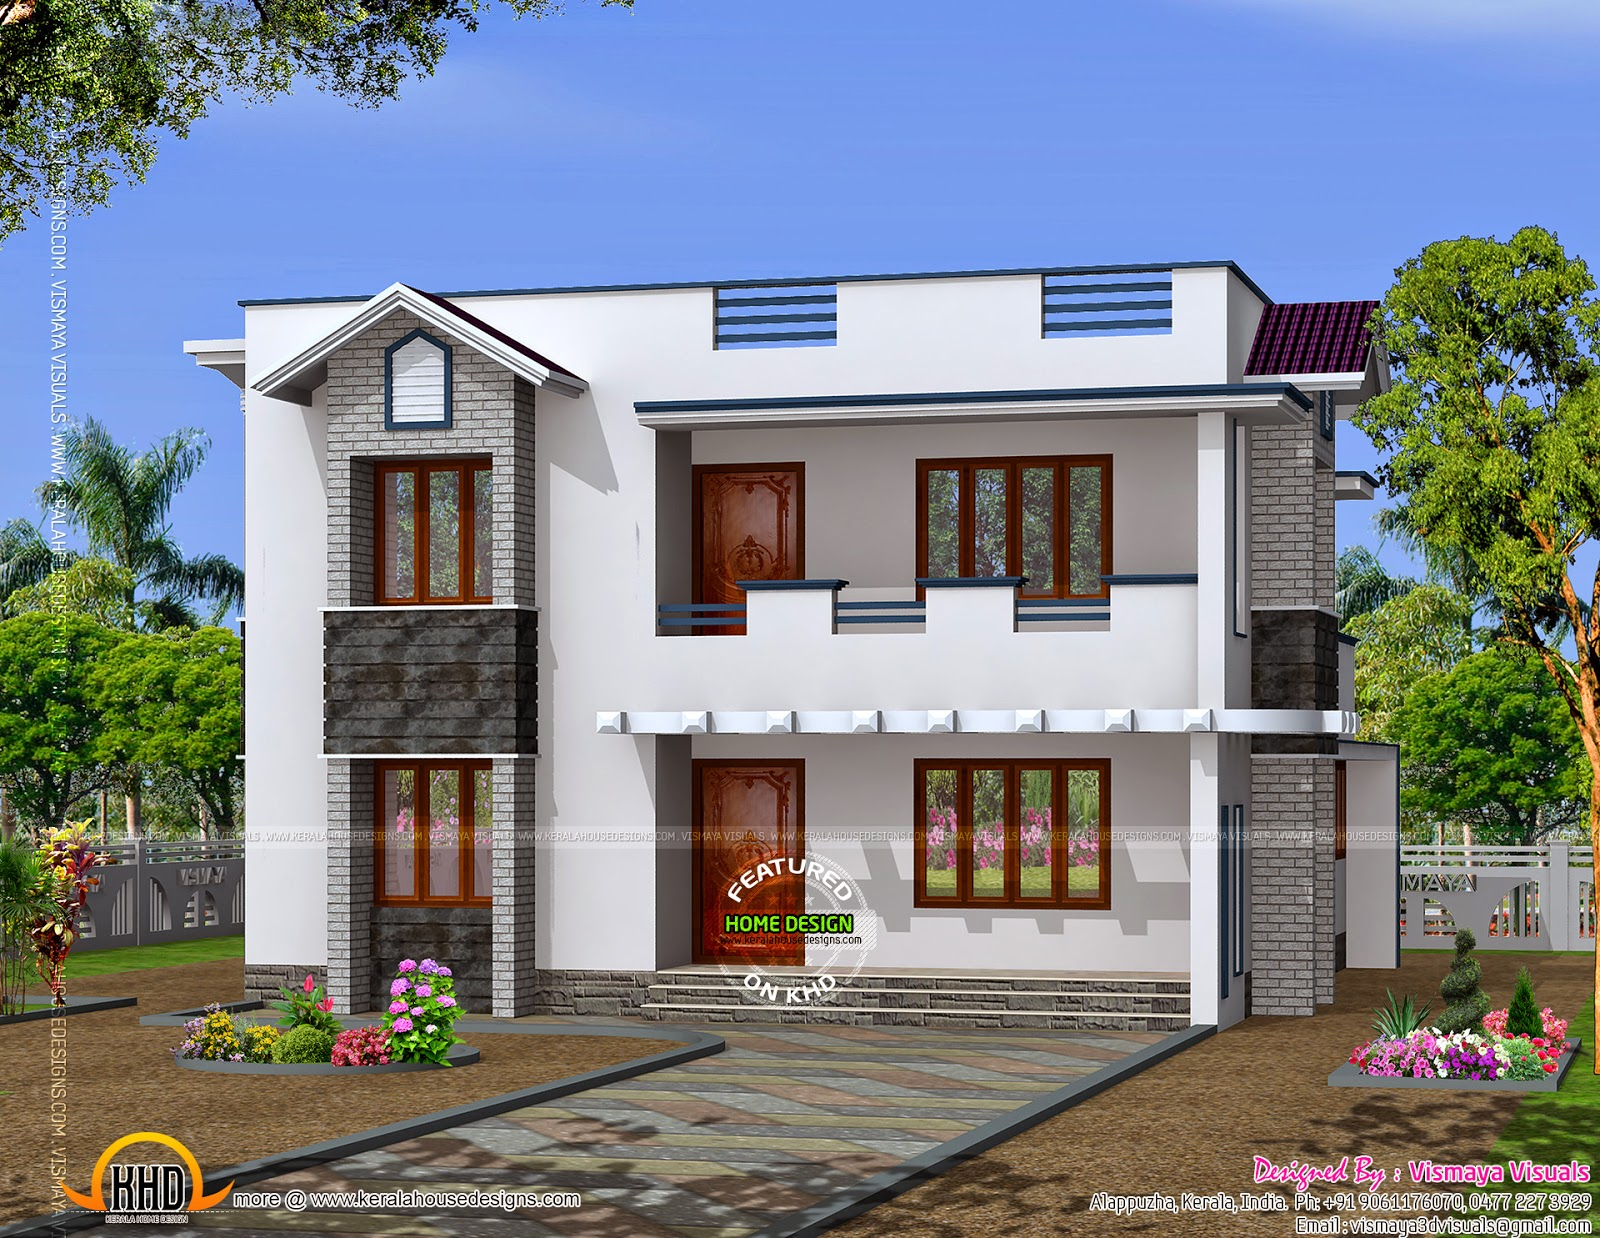 Simple design home kerala home design and floor plans for Indian simple house design